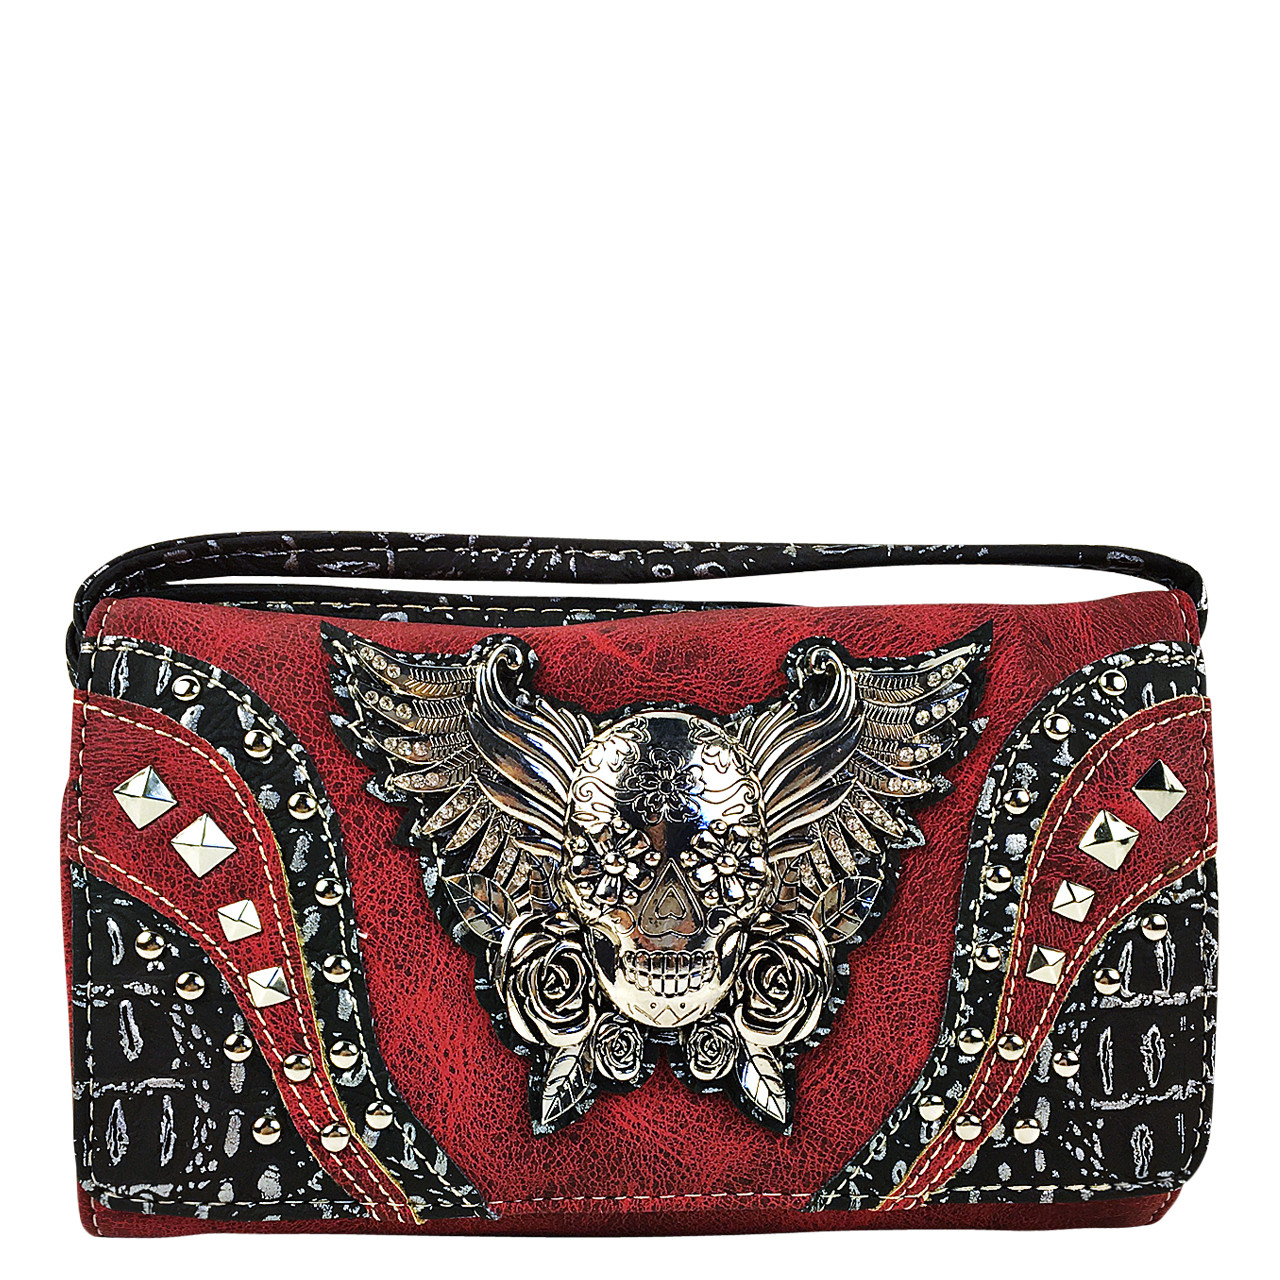 RED RHINESTONE STUDDED SKULL WITH WINGS LOOK CLUTCH TRIFOLD WALLET